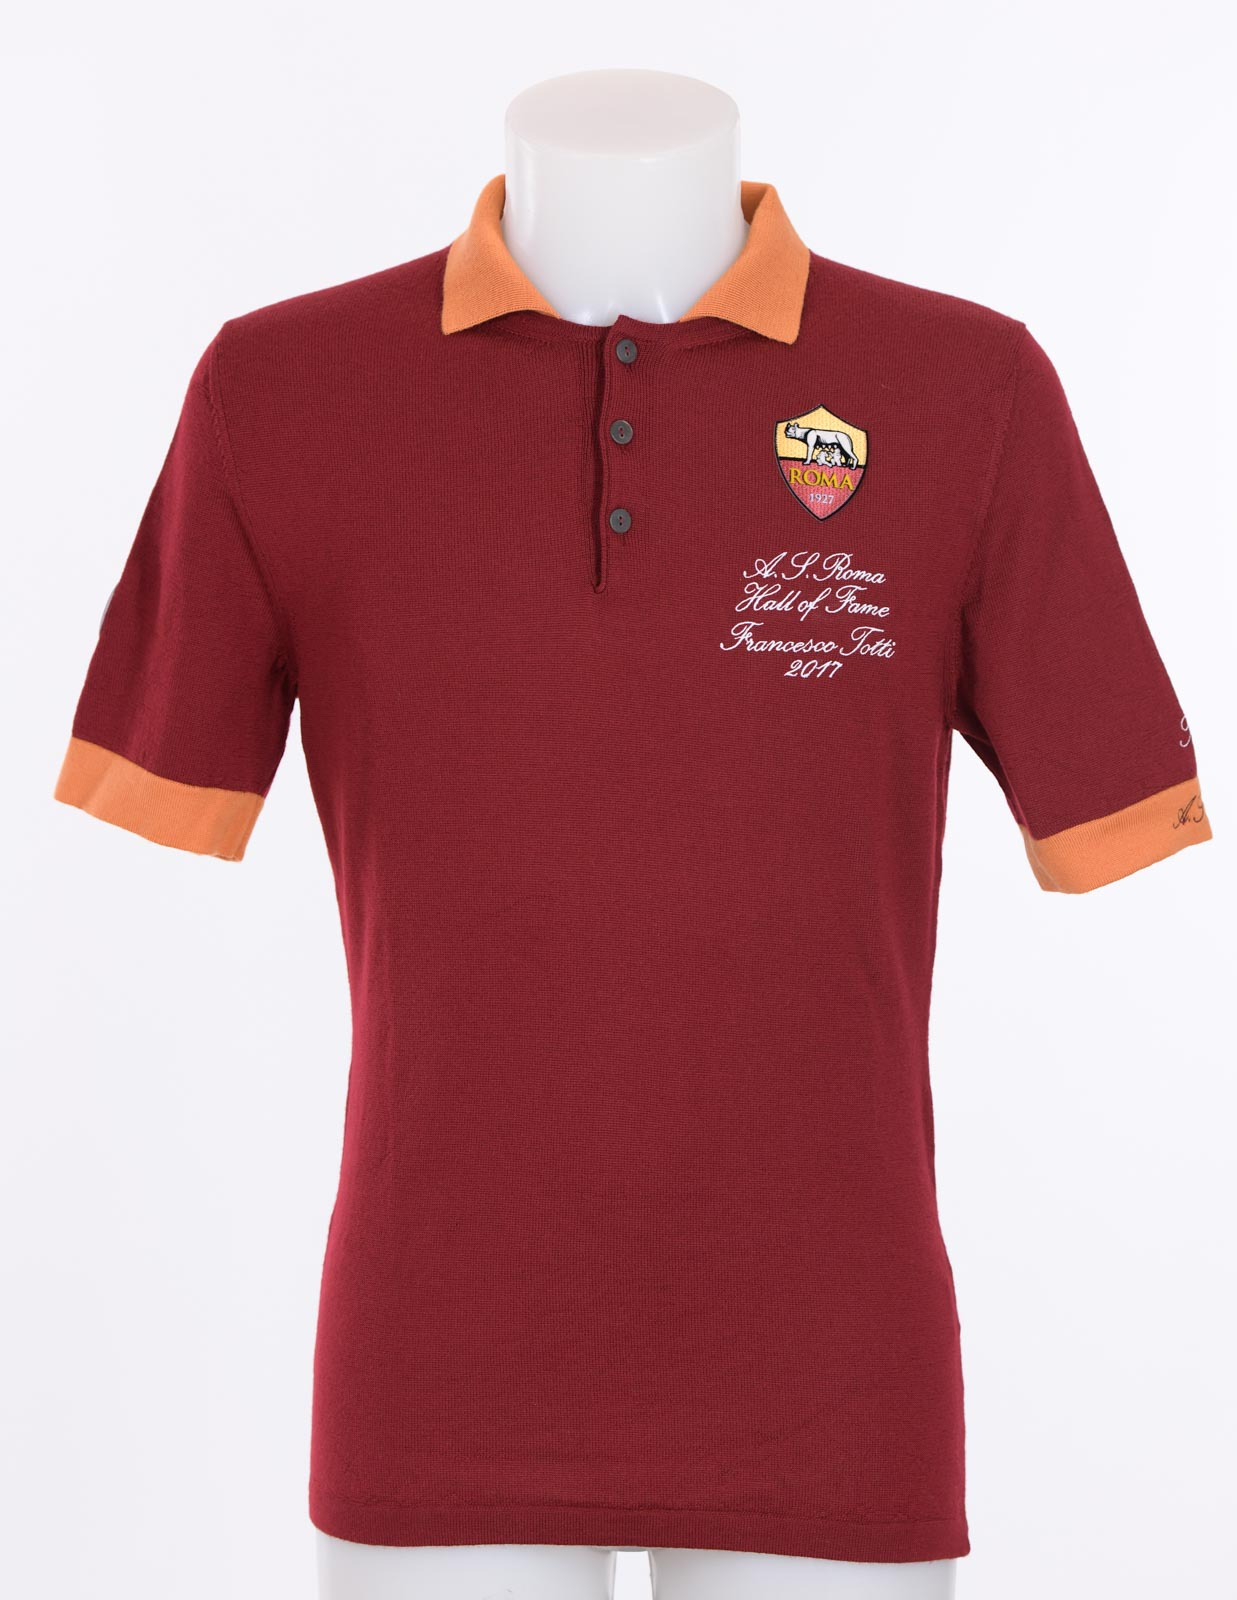 https://4.bp.blogspot.com/-elqmYX6ENps/W_1HqvB6n0I/AAAAAAABvyc/V635JHEjhMMHW_O0RRBMWk3G1sYgPz1GQCLcBGAs/s1600/special-as-roma-francesco-totti-hall-of-fame-collection%2B%25283%2529.jpg